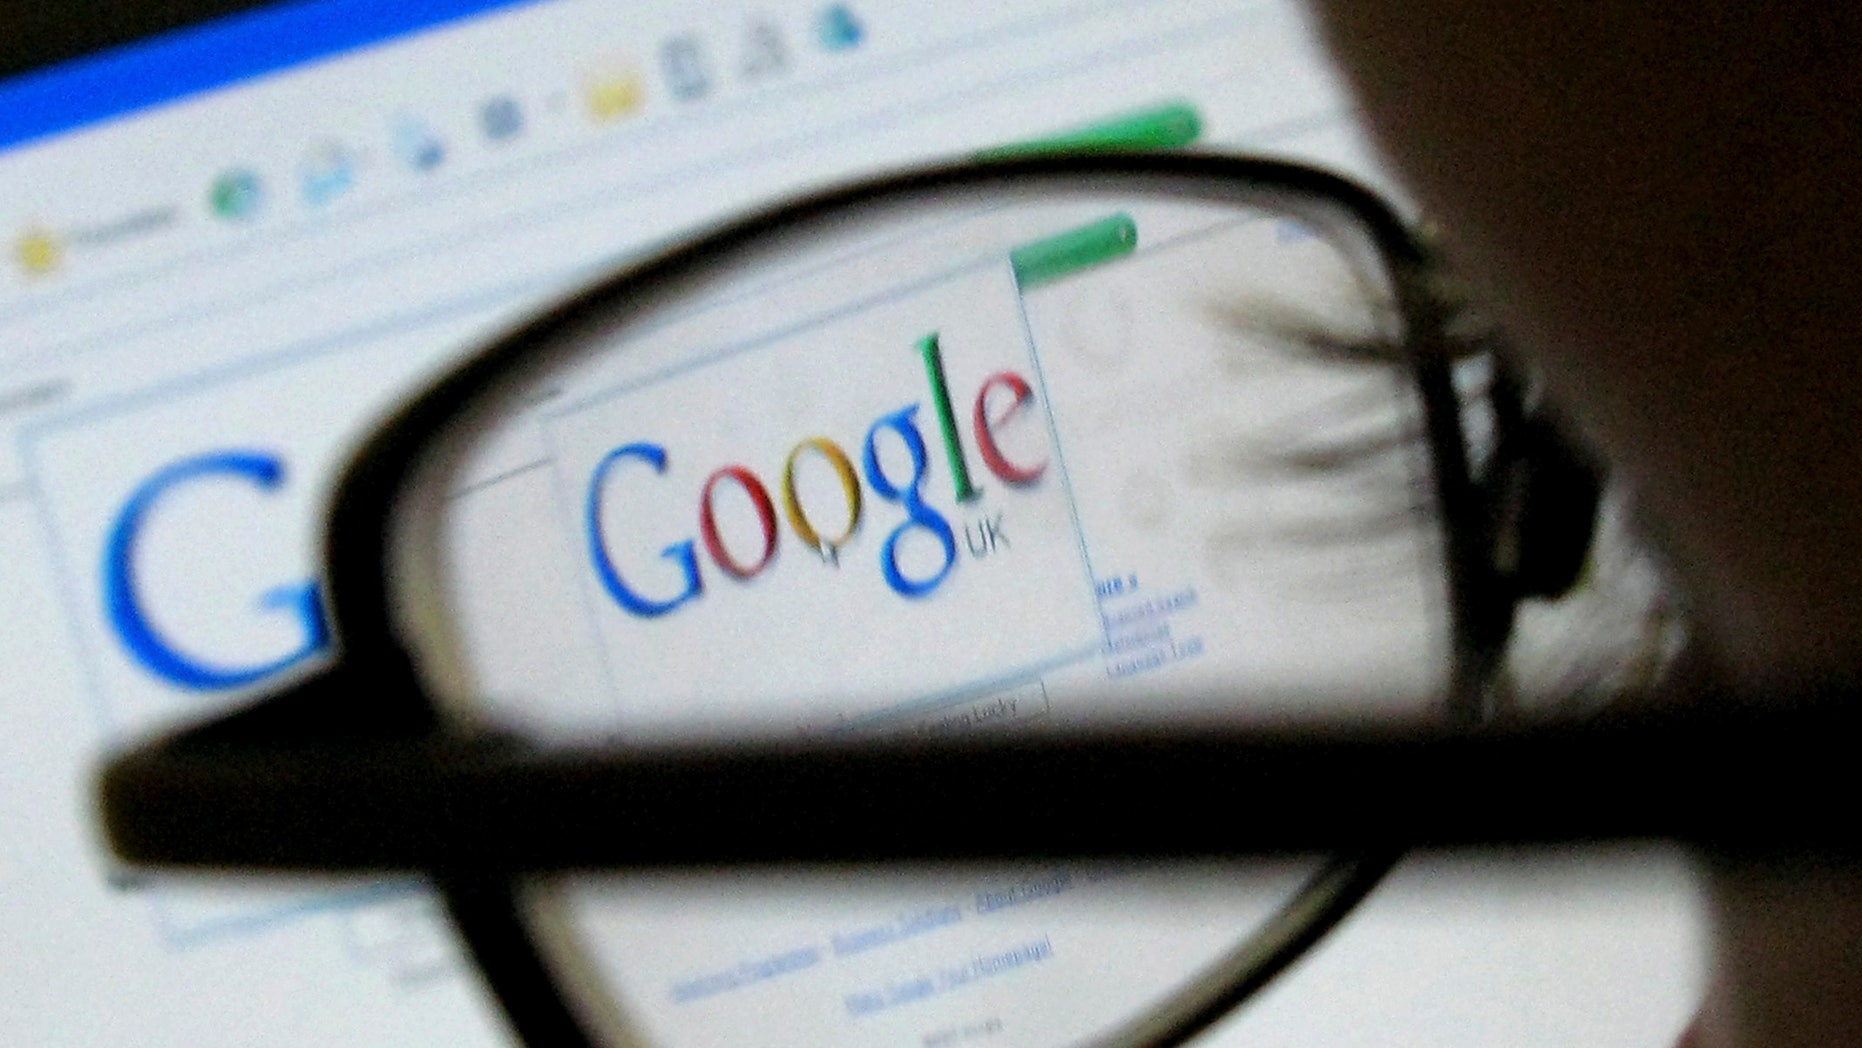 A Google search page is seen through the spectacles of a computer user in Leicester, central England July 20, 2007.  Web search leader Google reported on Thursday a 28 percent rise in profits that fell short of consensus expectations, as a recent jump in operating expenses offset market share gains against rivals.   REUTERS/Darren Staples  (BRITAIN)